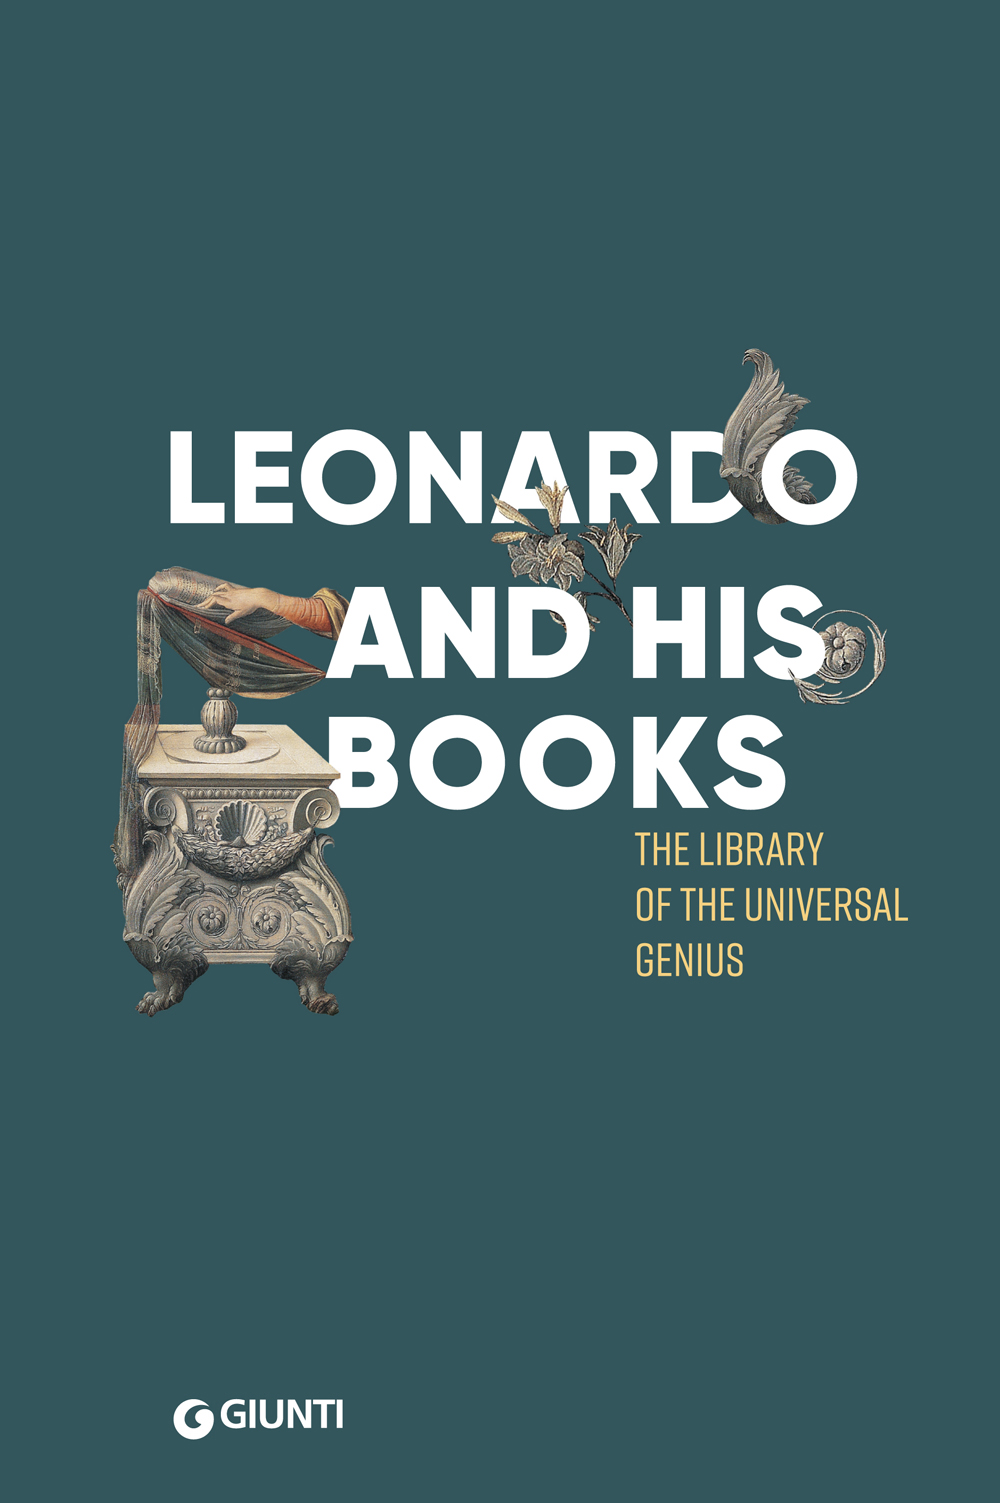 Leonardo and his books